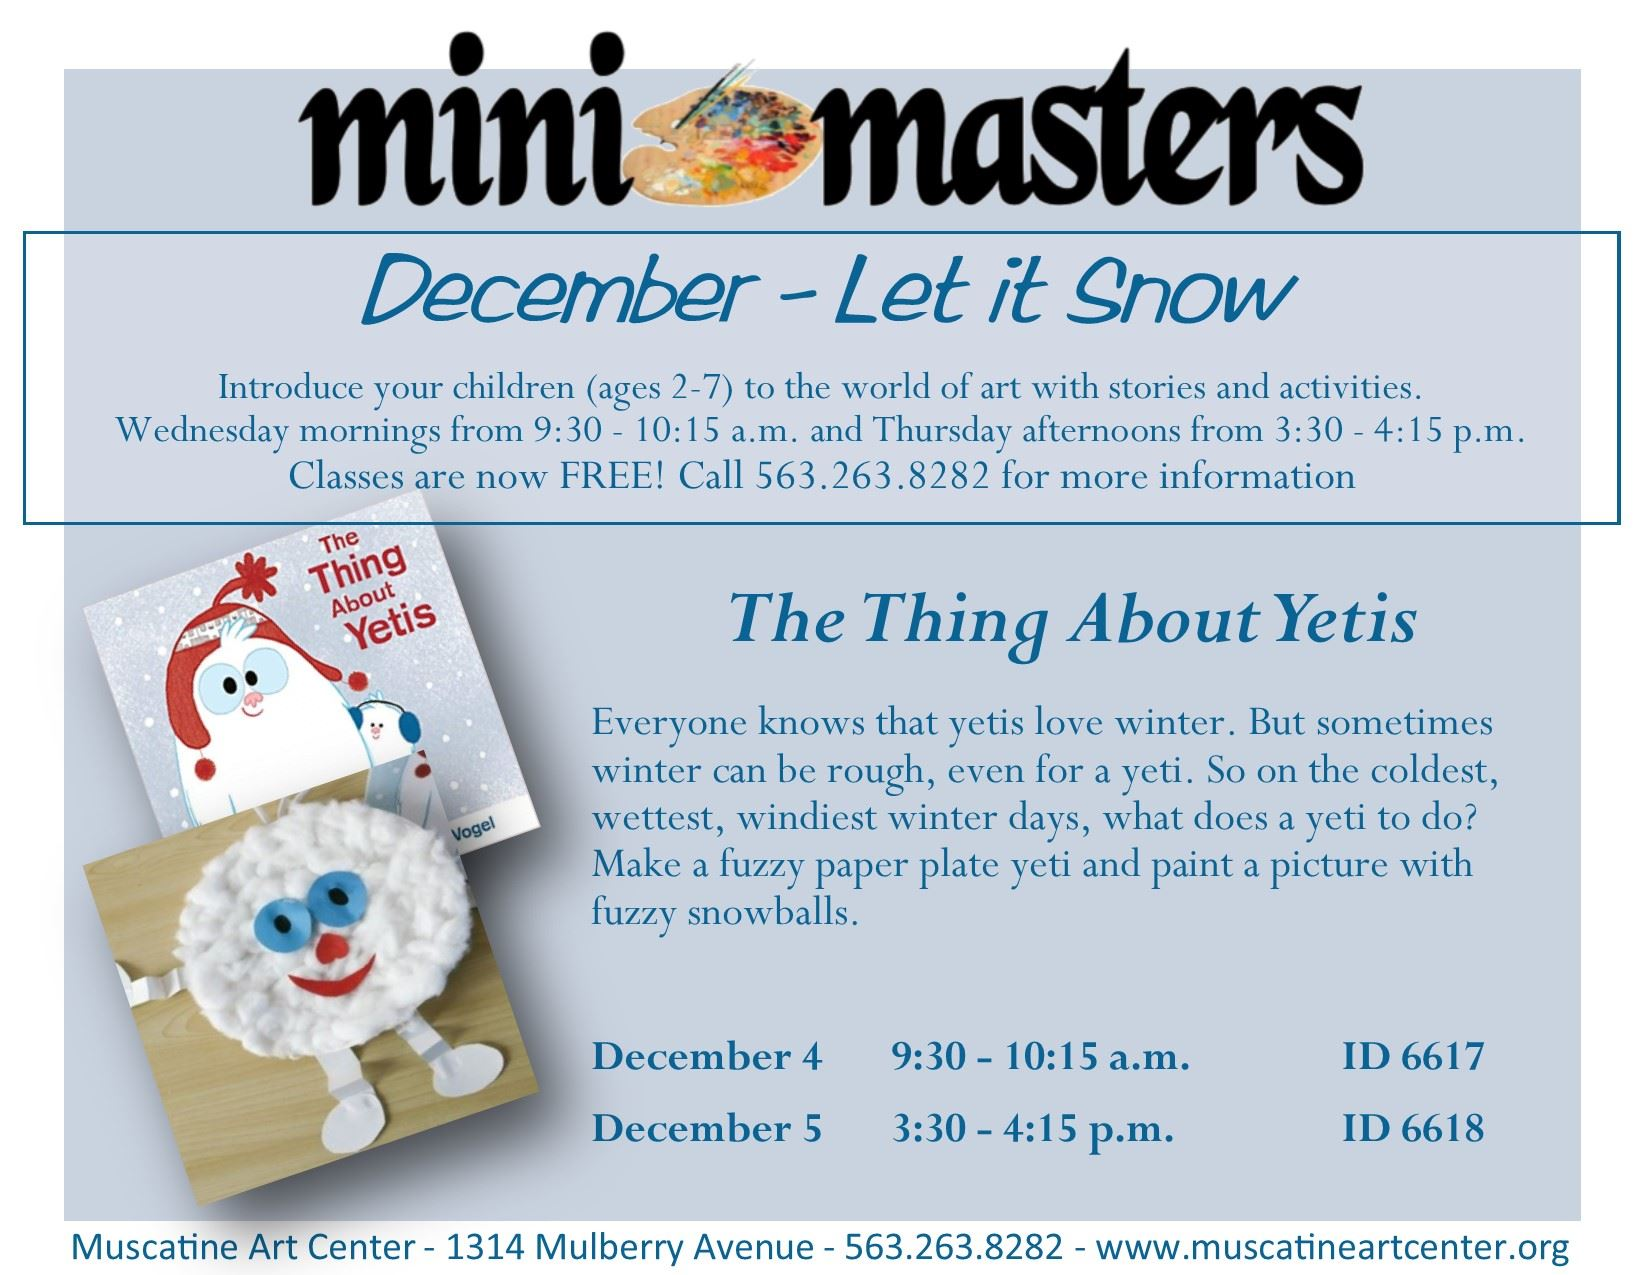 December 4-5 - The Thing About Yetis - mini masters